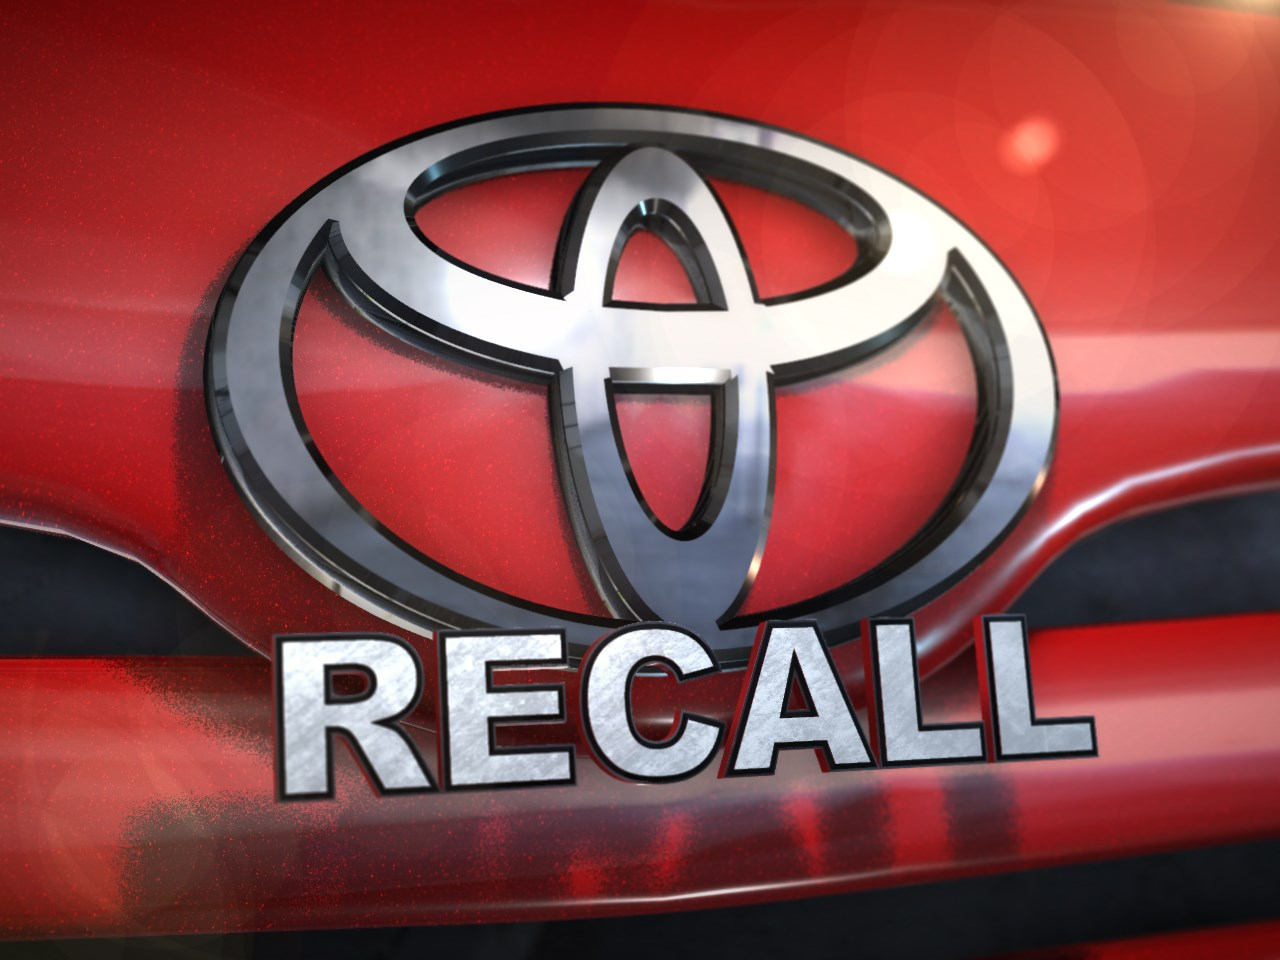 Toyota recalls 310K older minivans due to issues with shift lever